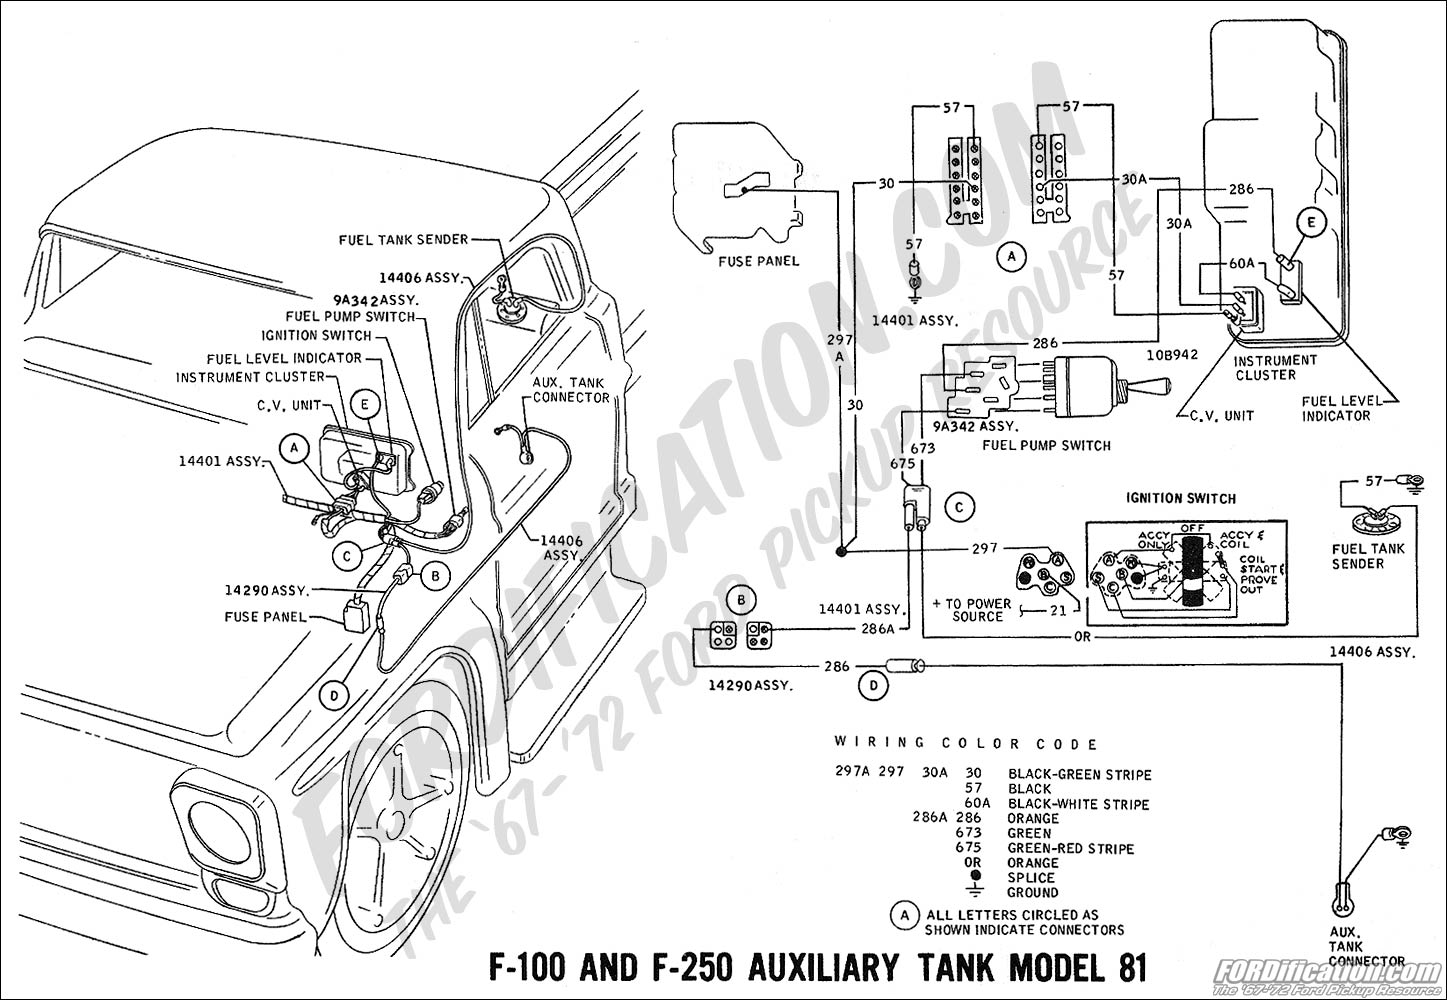 Ford F100 Fuse Box | Wiring Diagram  Mustang Fuse Box Location on